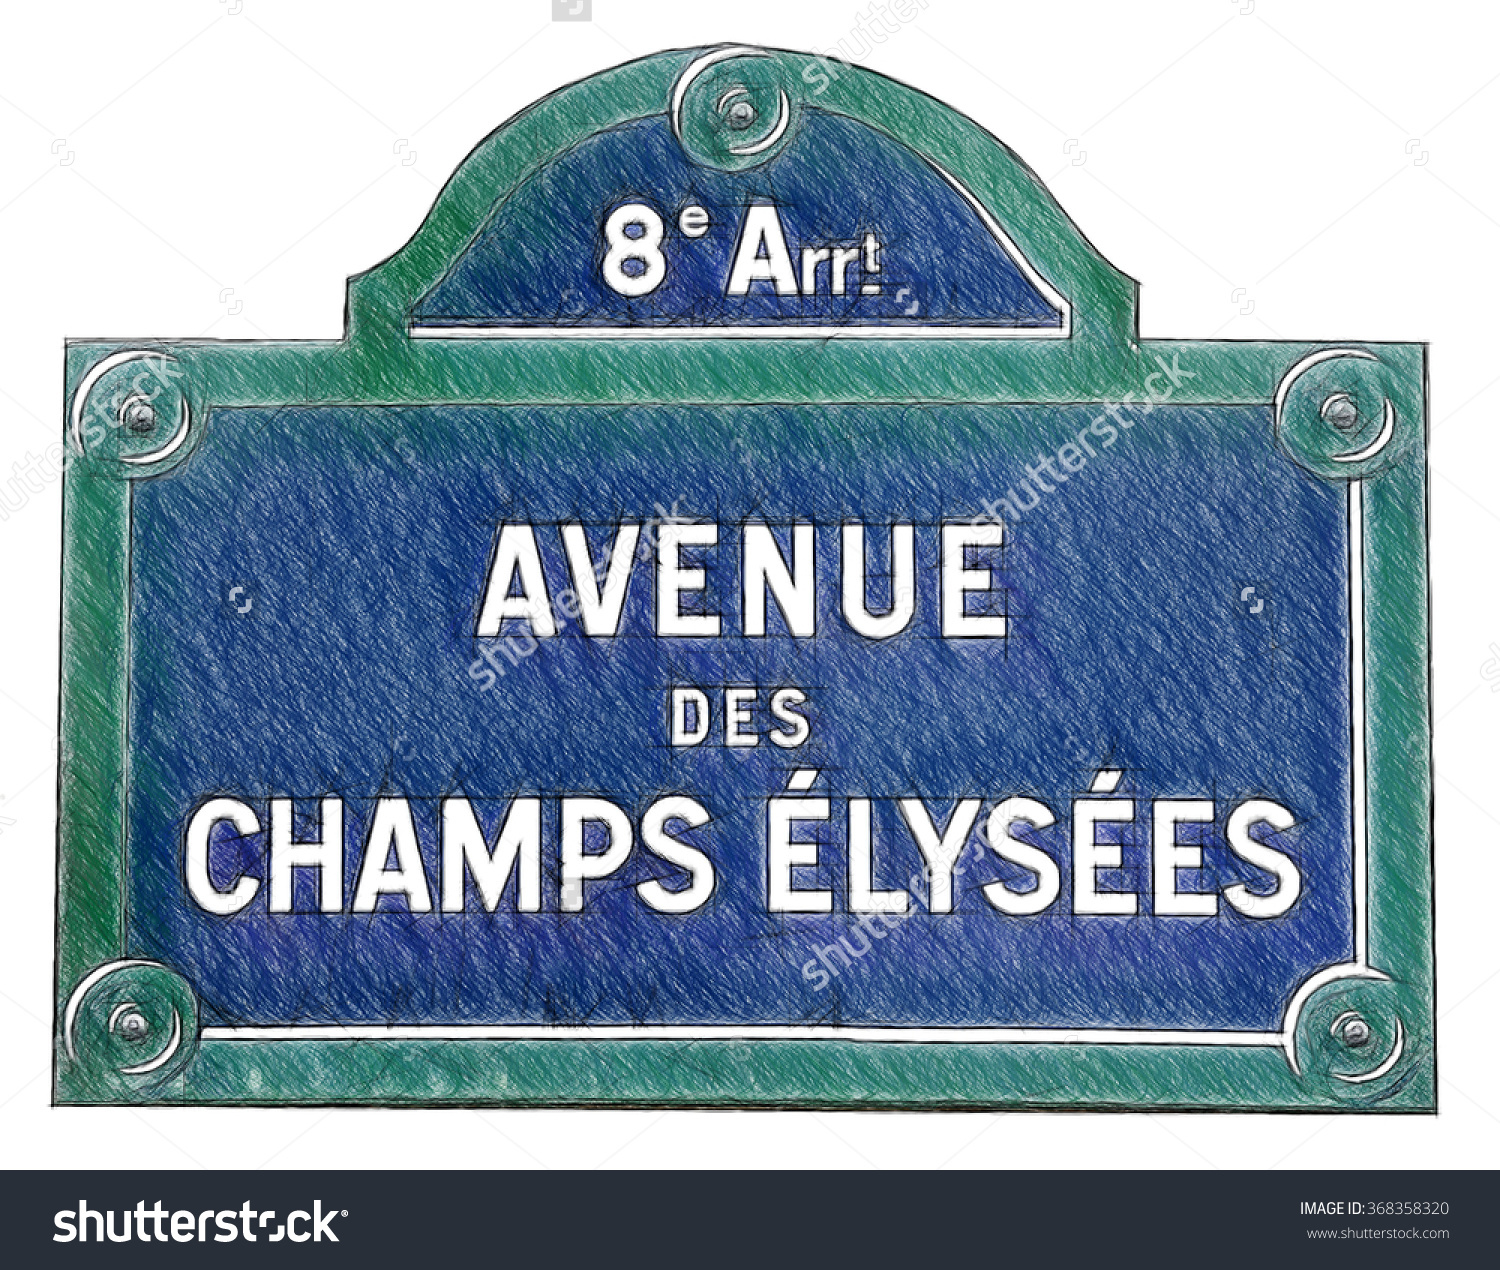 Street Sign Champs Elysees Paris France Stock Illustration.